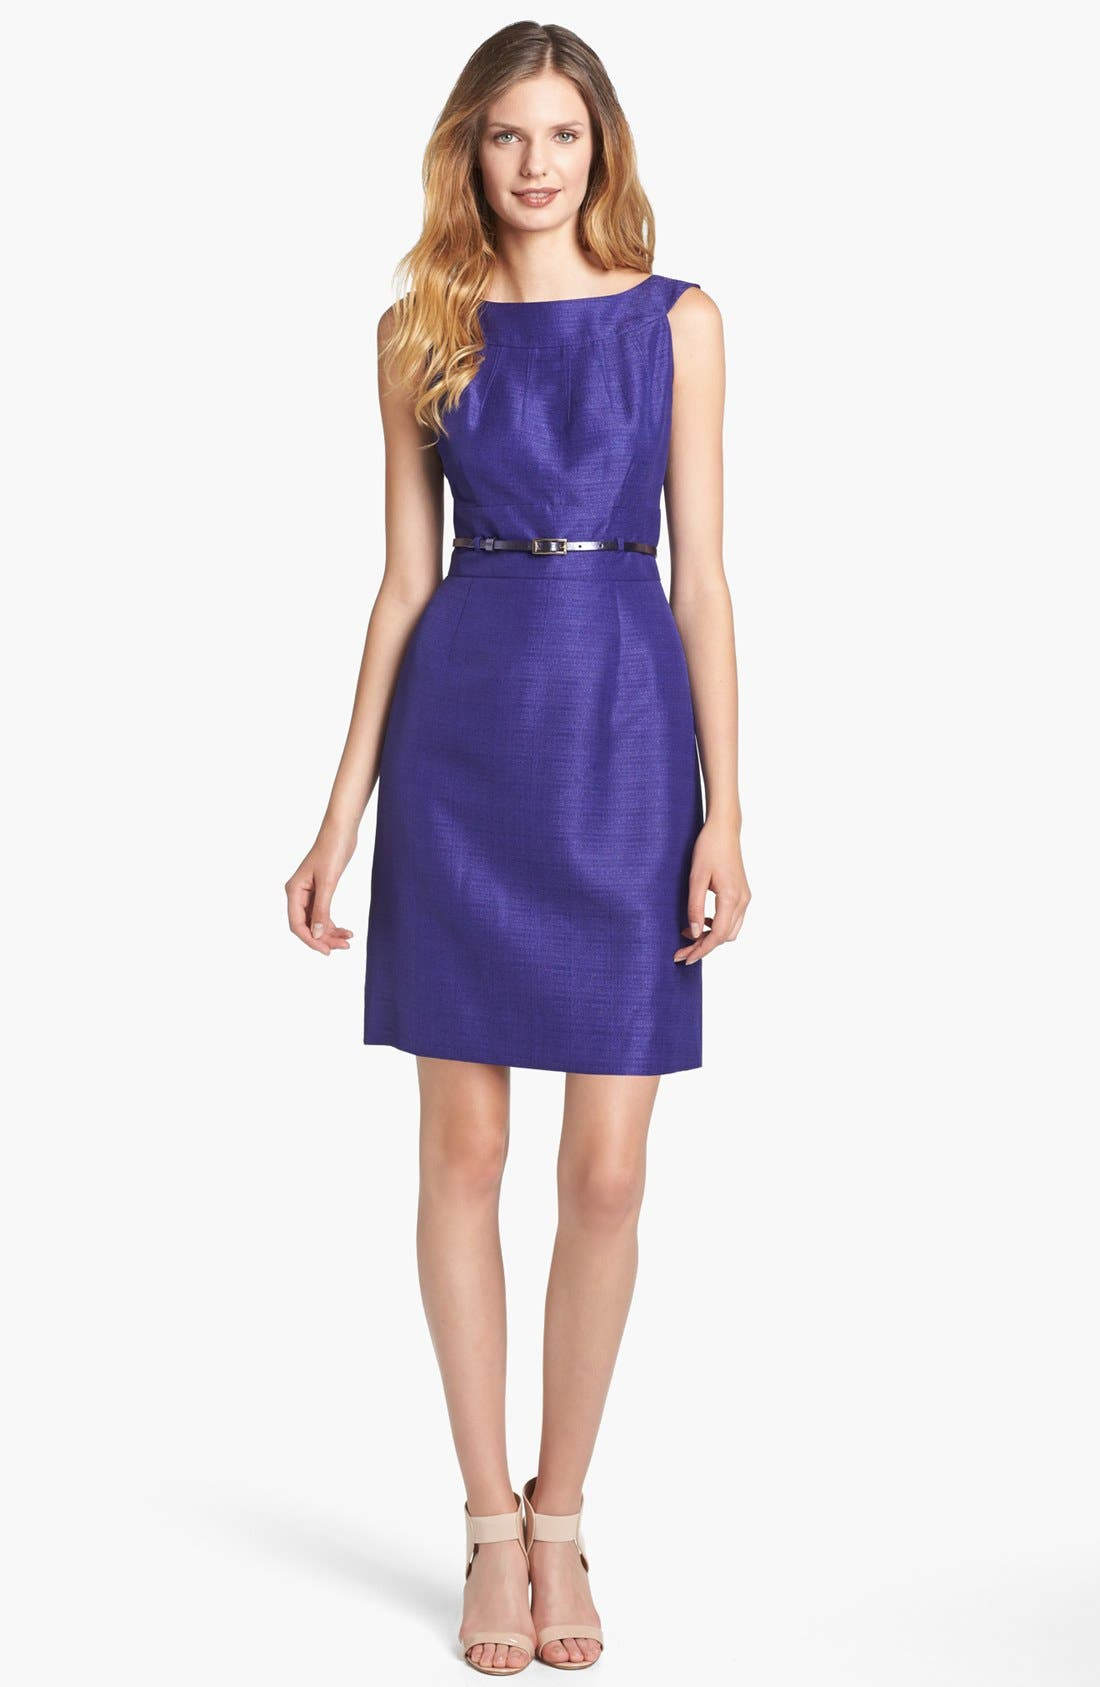 Alternate Image 1 Selected - Tahari Metallic Jacquard Sheath Dress